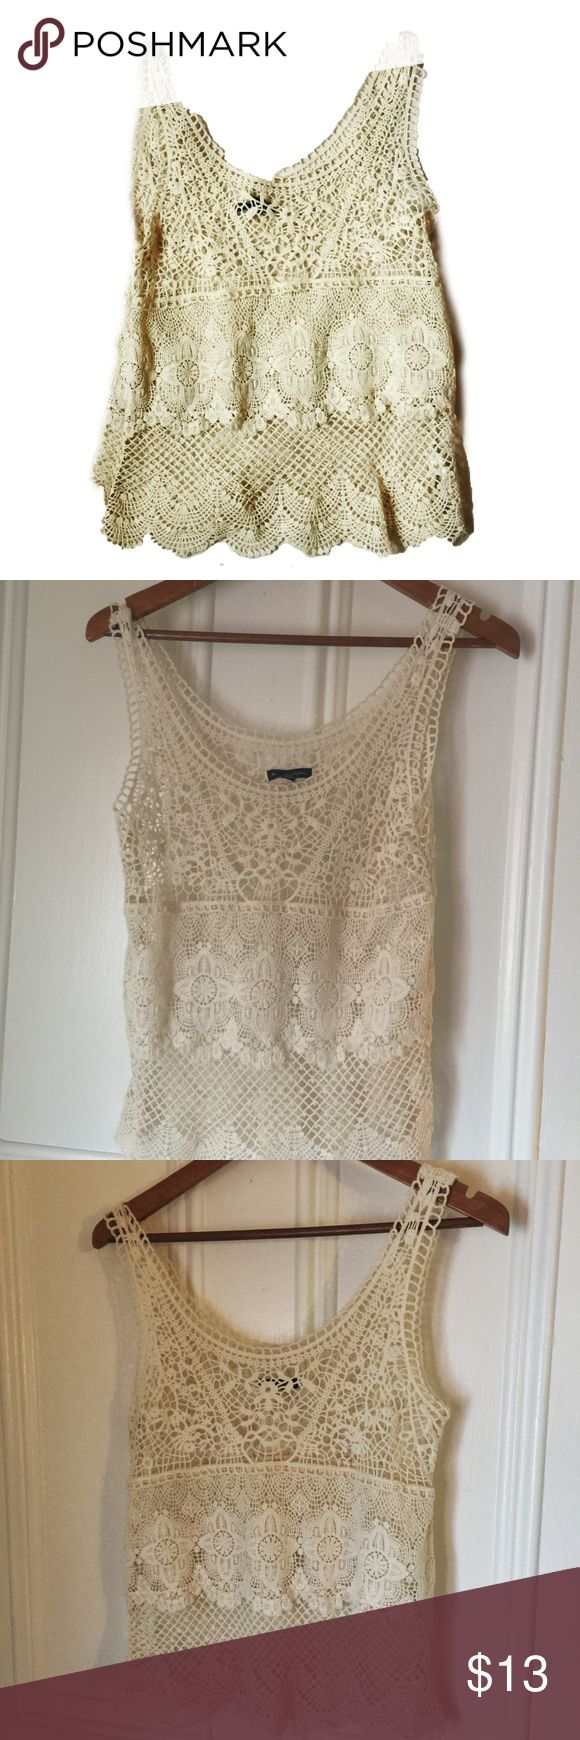 American Eagle cream lace top Delicate and pretty, this is an American Eagle cream lace size top in great condition. Size small/petite, measurements on request. American Eagle Outfitters Tops